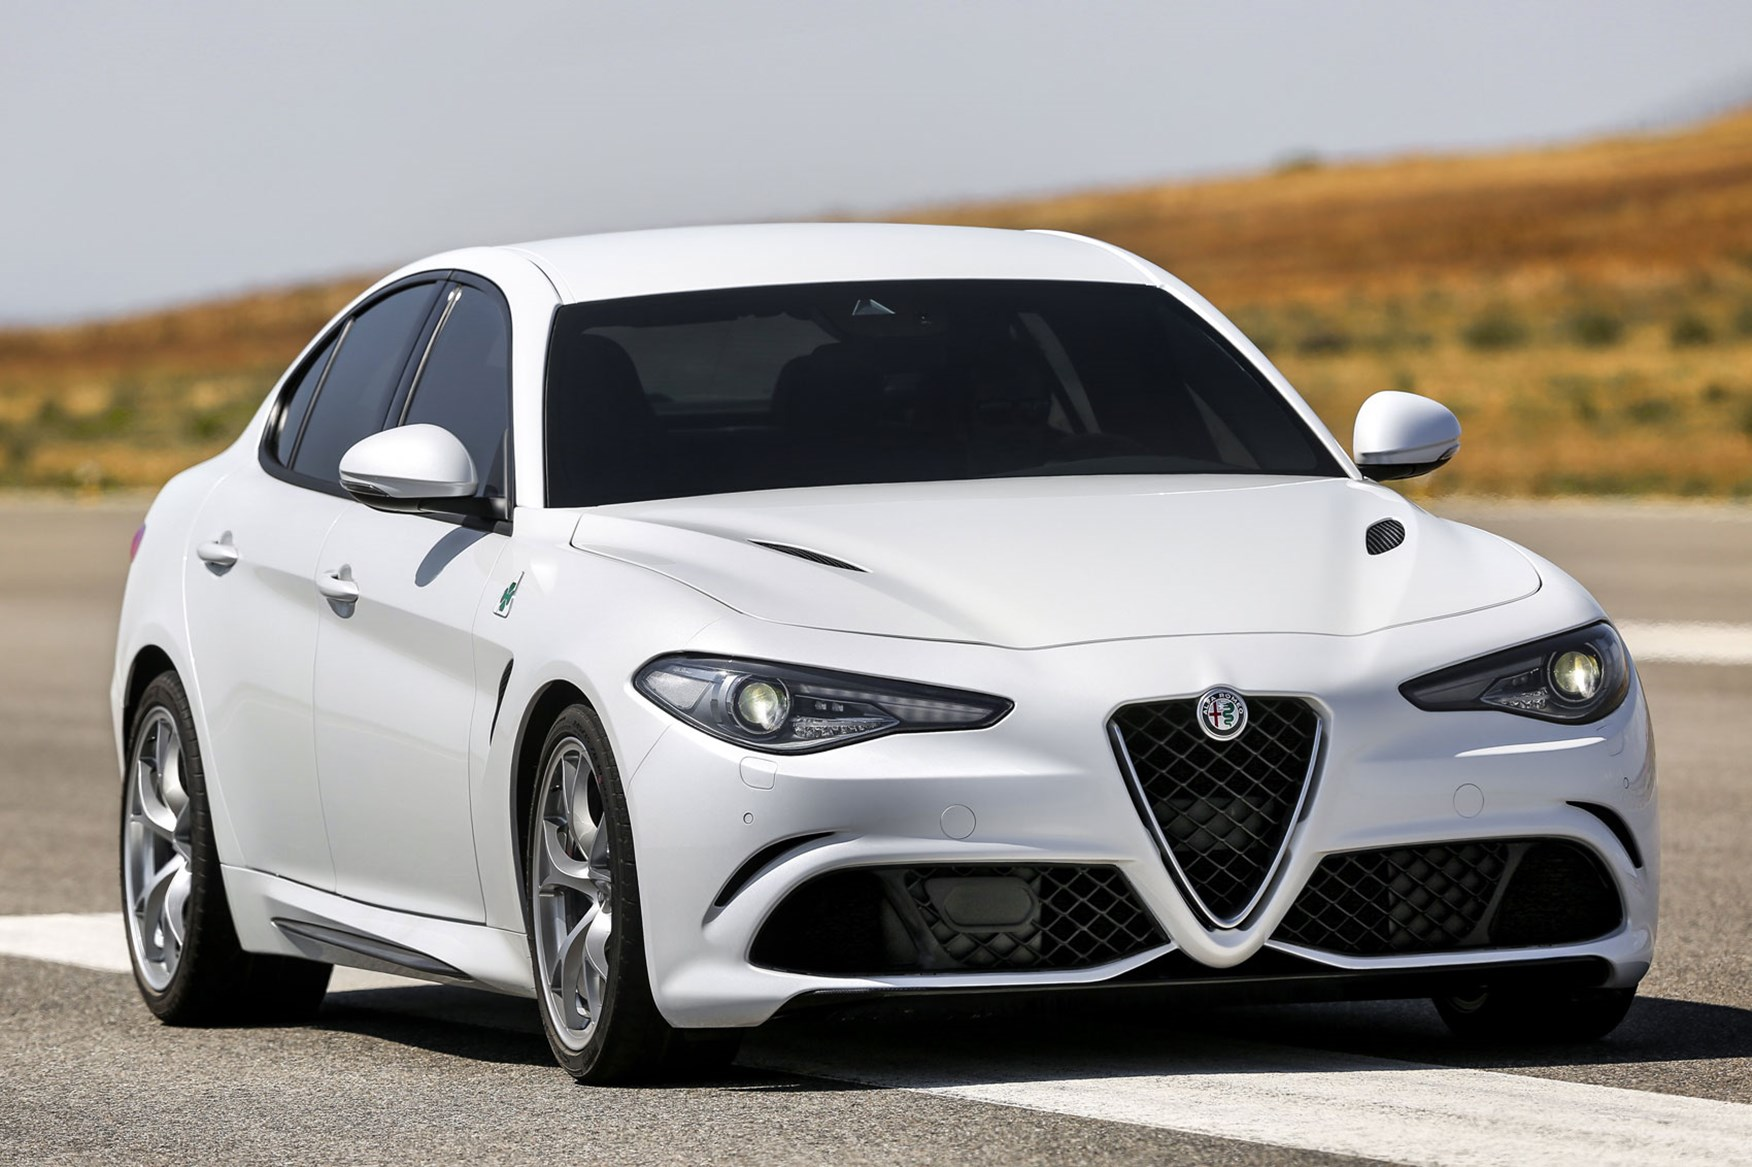 Alfa romeo giulietta quadrifoglio for sale uk